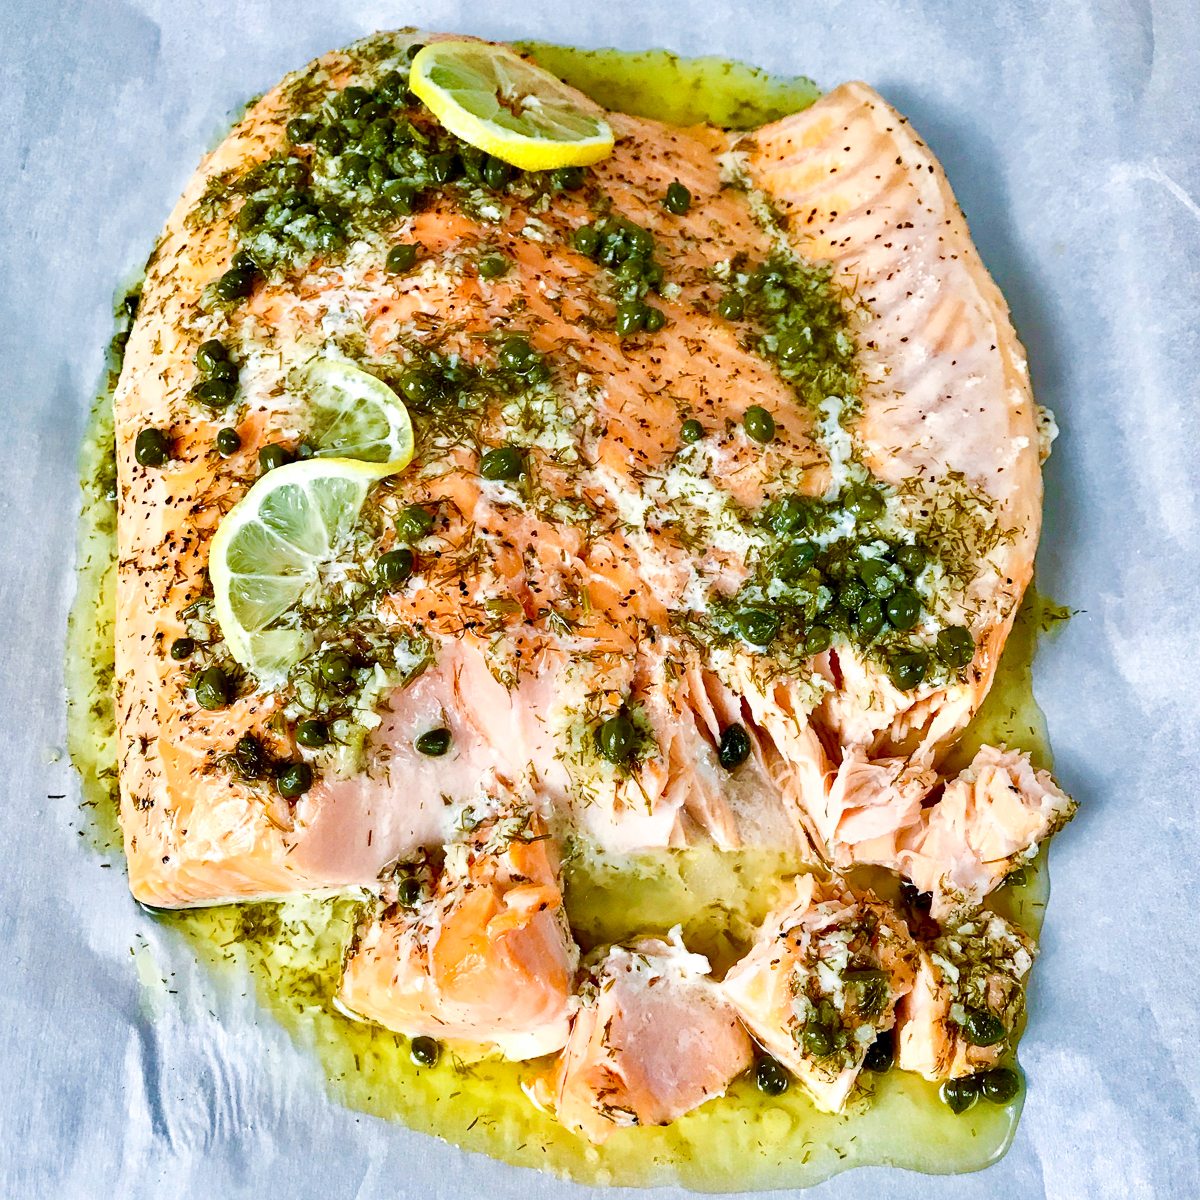 Slow roasted salmon topped with herbs and lemon on a baking sheet.